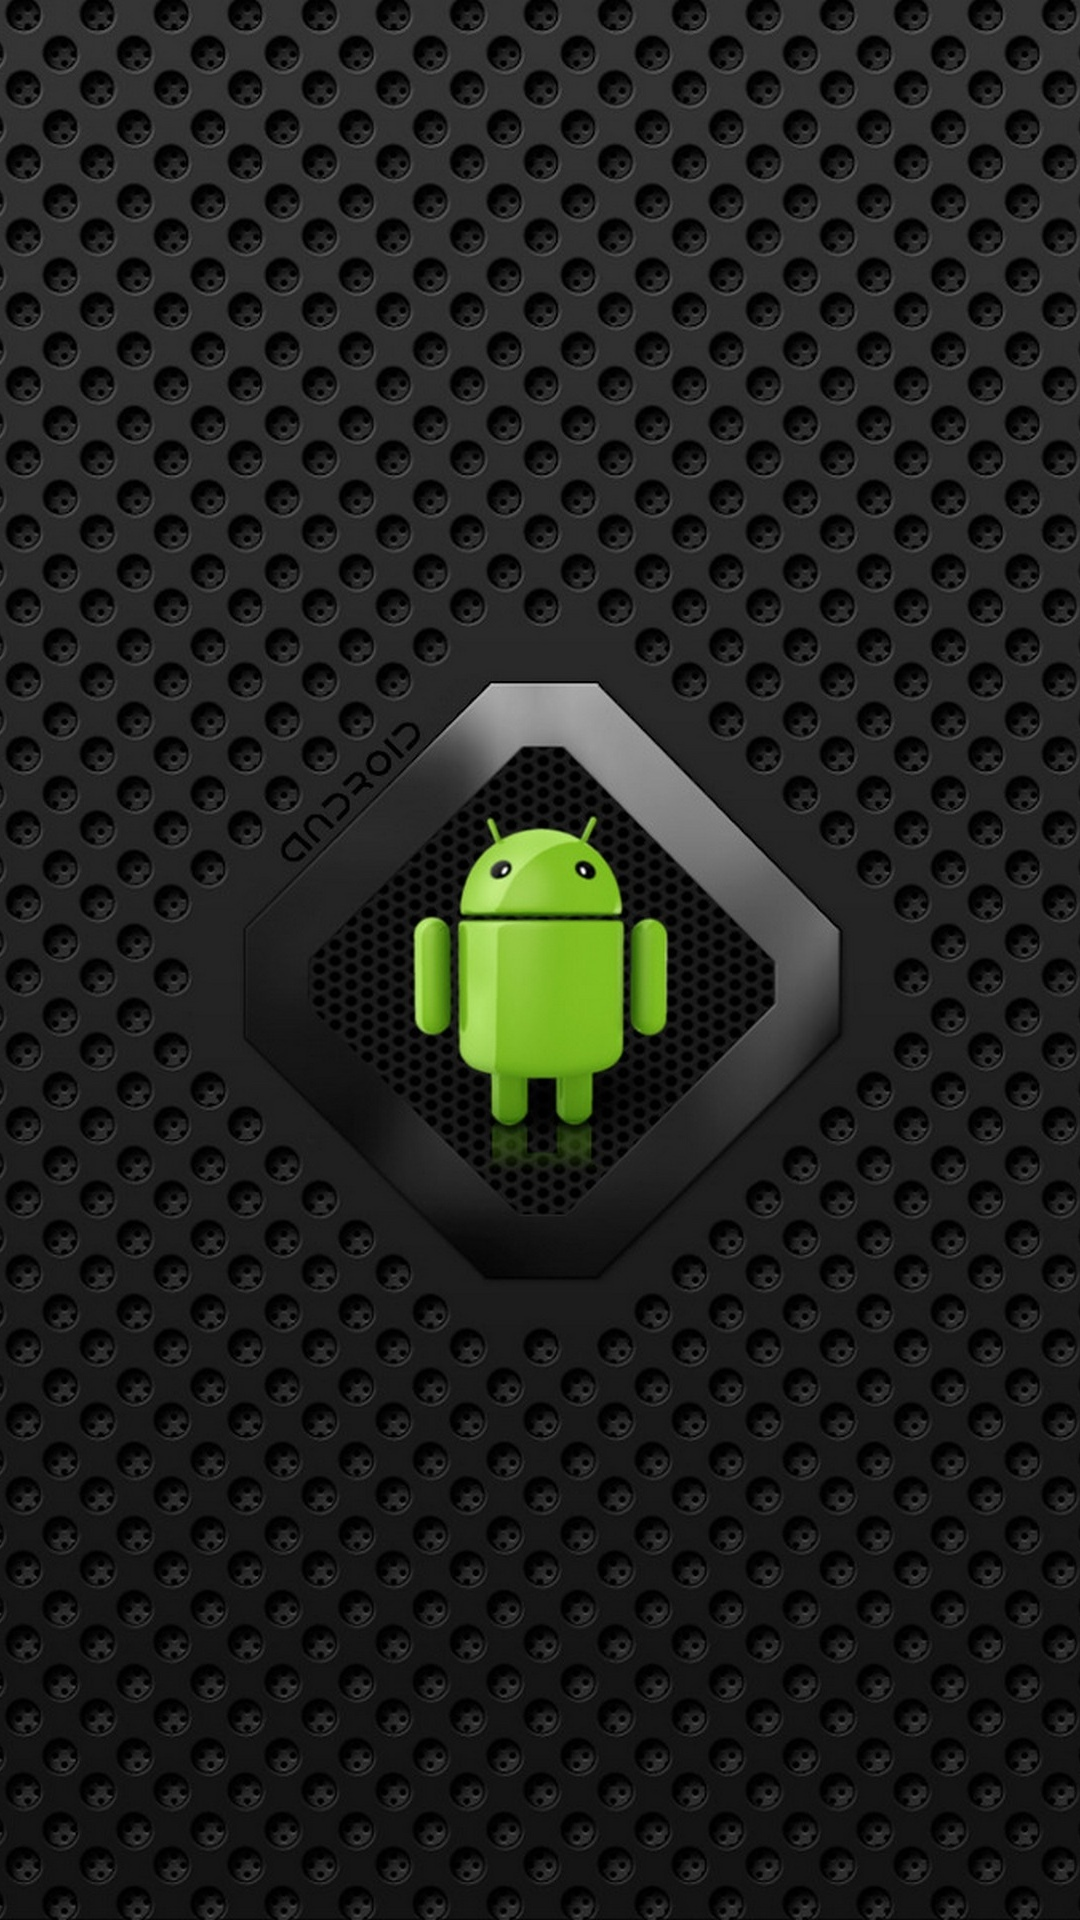 android logo on carbon dot pattern